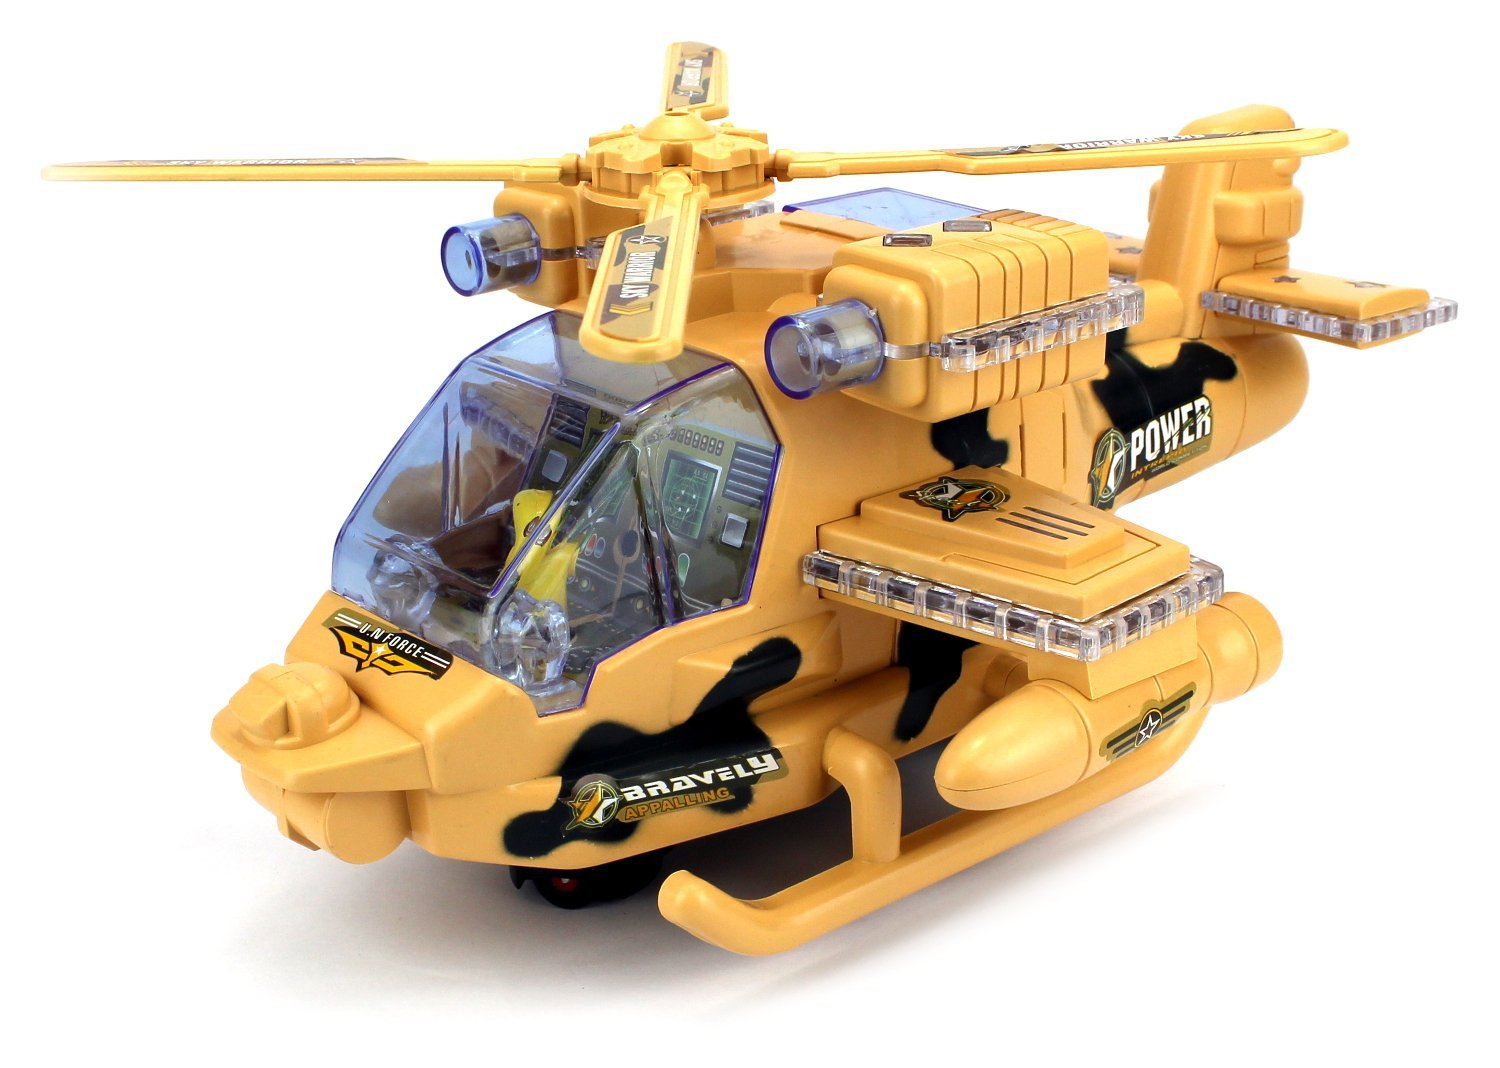 Sky Warrior Battleship Battery Operated Bump and Go Toy Helicopter w  Flashing Lights,... by Velocity Toys